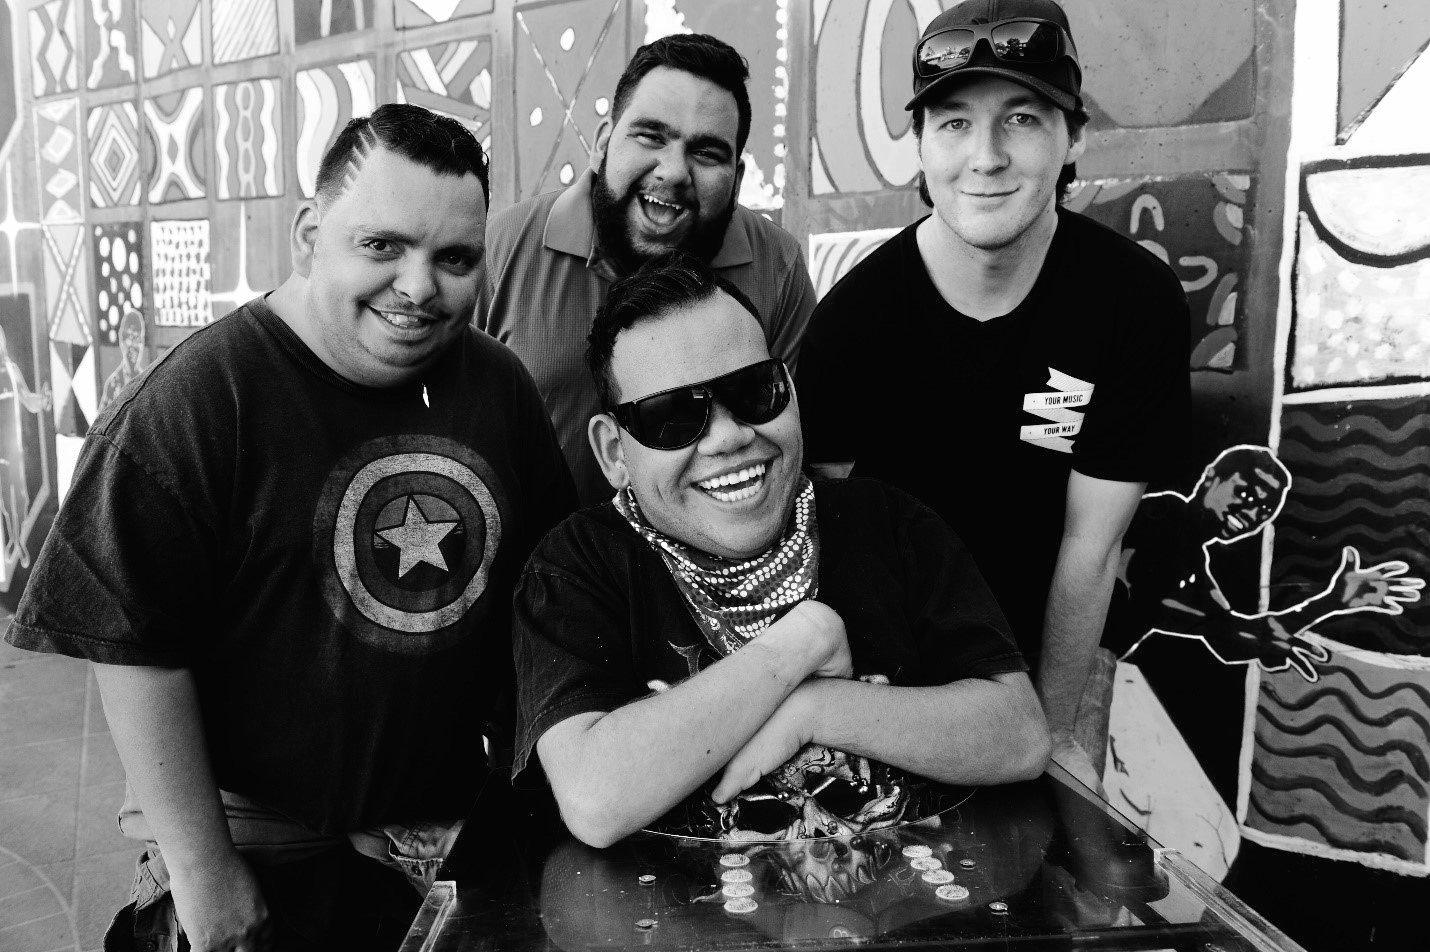 BAND: From left,  some of the members of the Brotherhood of the Blues are Yawuru man John Cieslak lives with Robinow Syndrome, Bundjalung man Zac Paden lives with hemiplegic cerebral palsy, Bundjalung man Luke Murray  lives with Cerebral Palsy, and Lismore's Harley Bodenham lives with Autism.